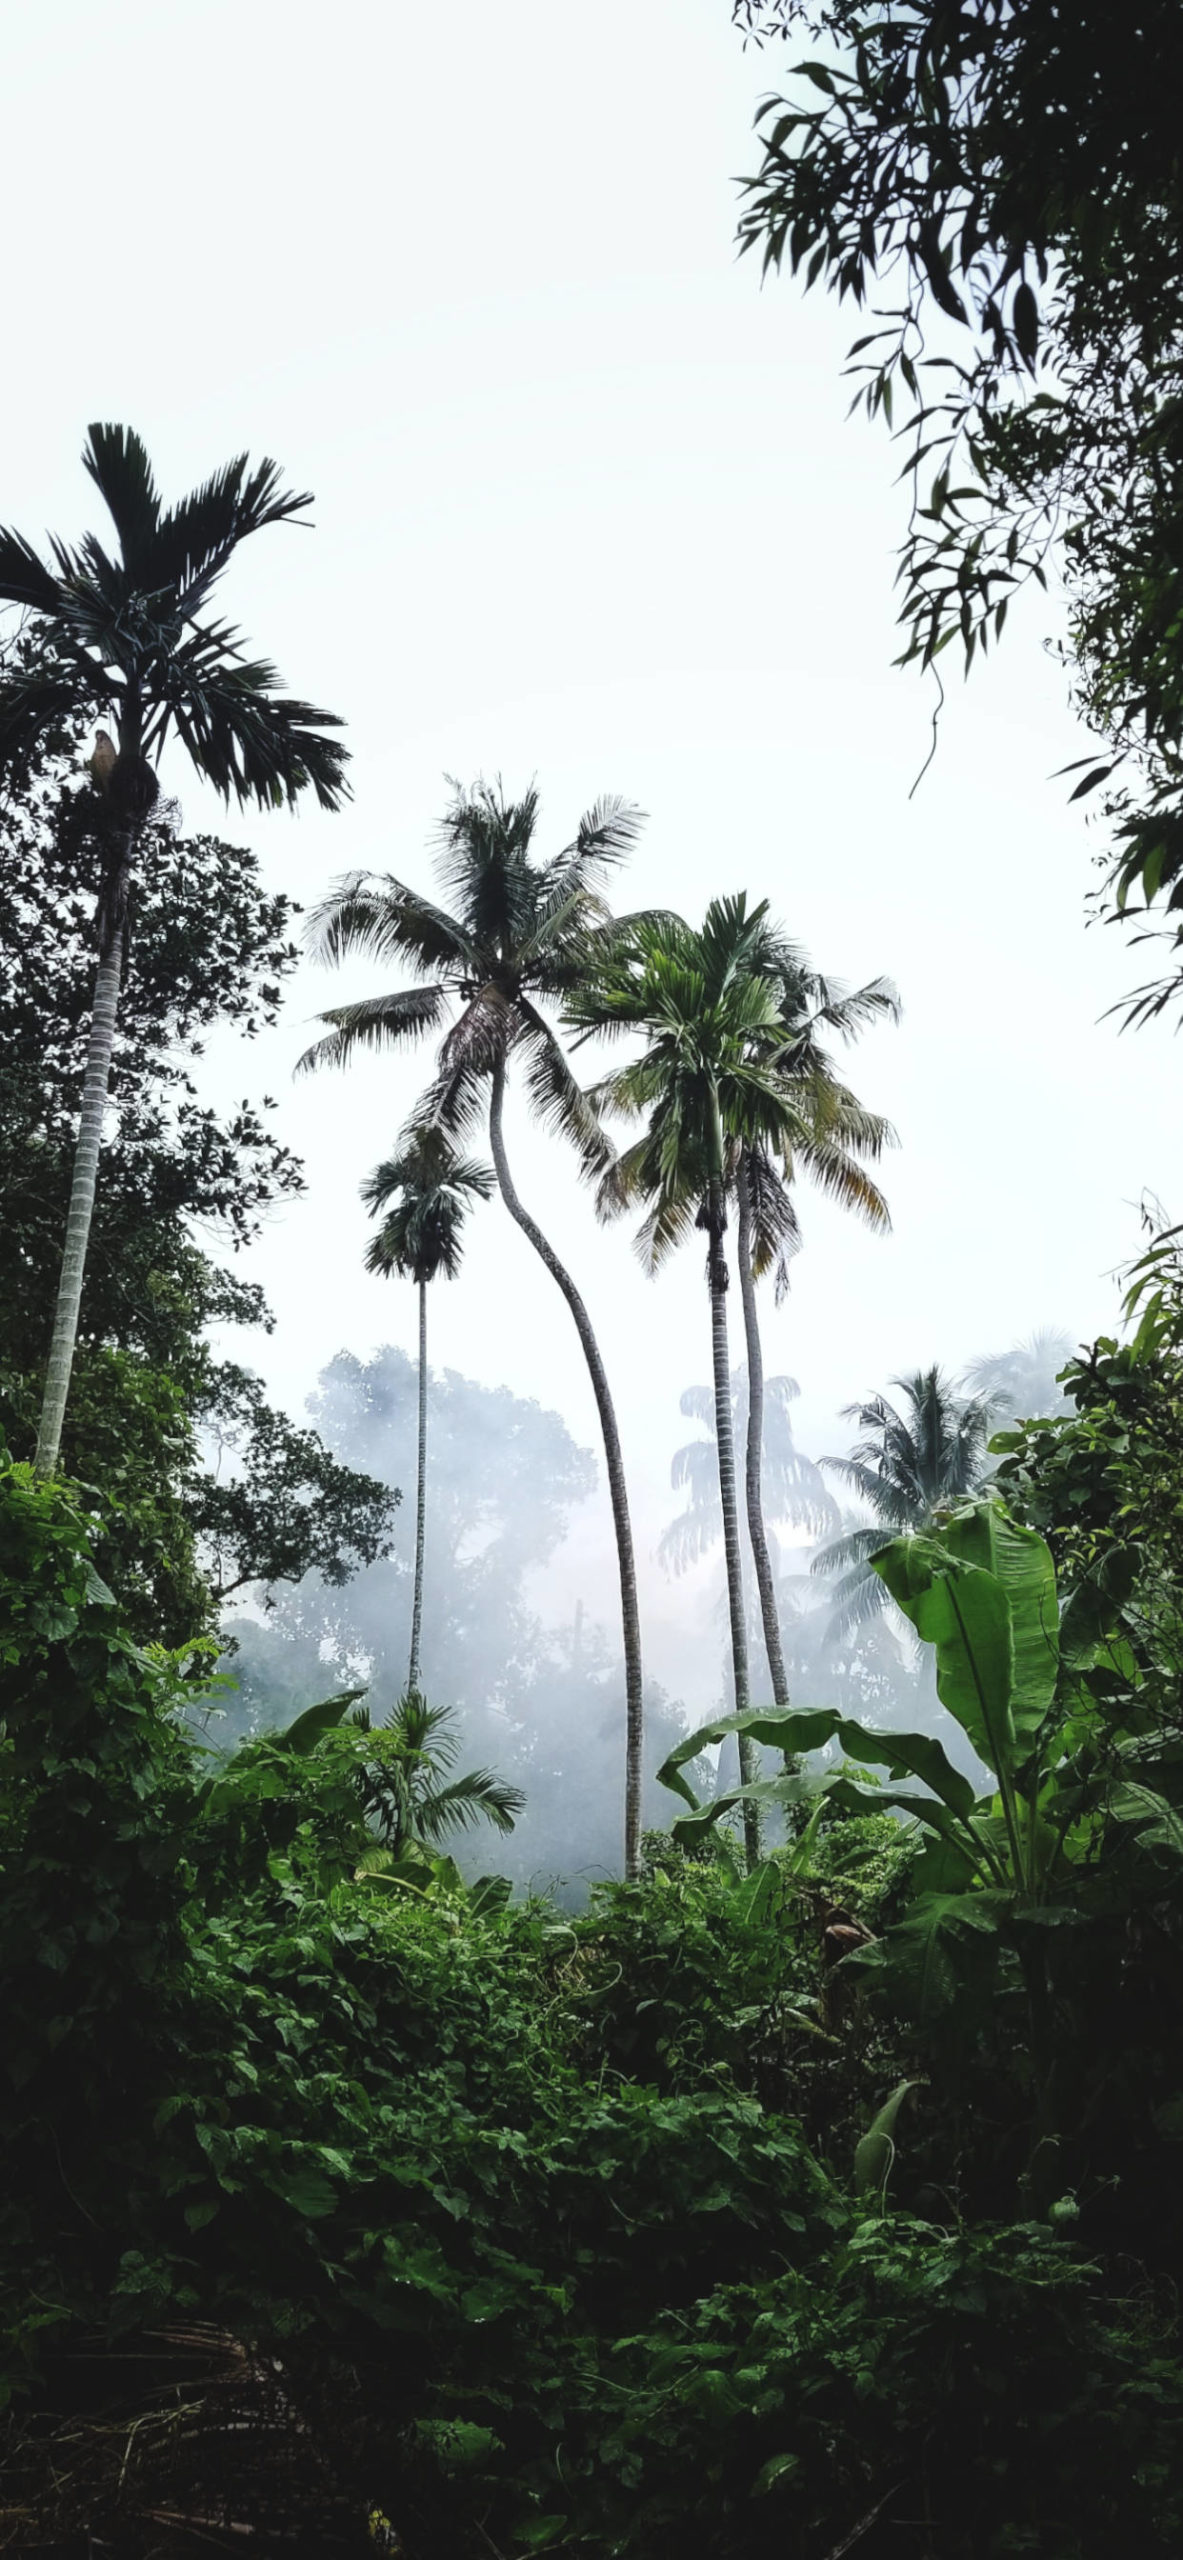 iPhone wallpapers jungle palms trees scaled Jungle